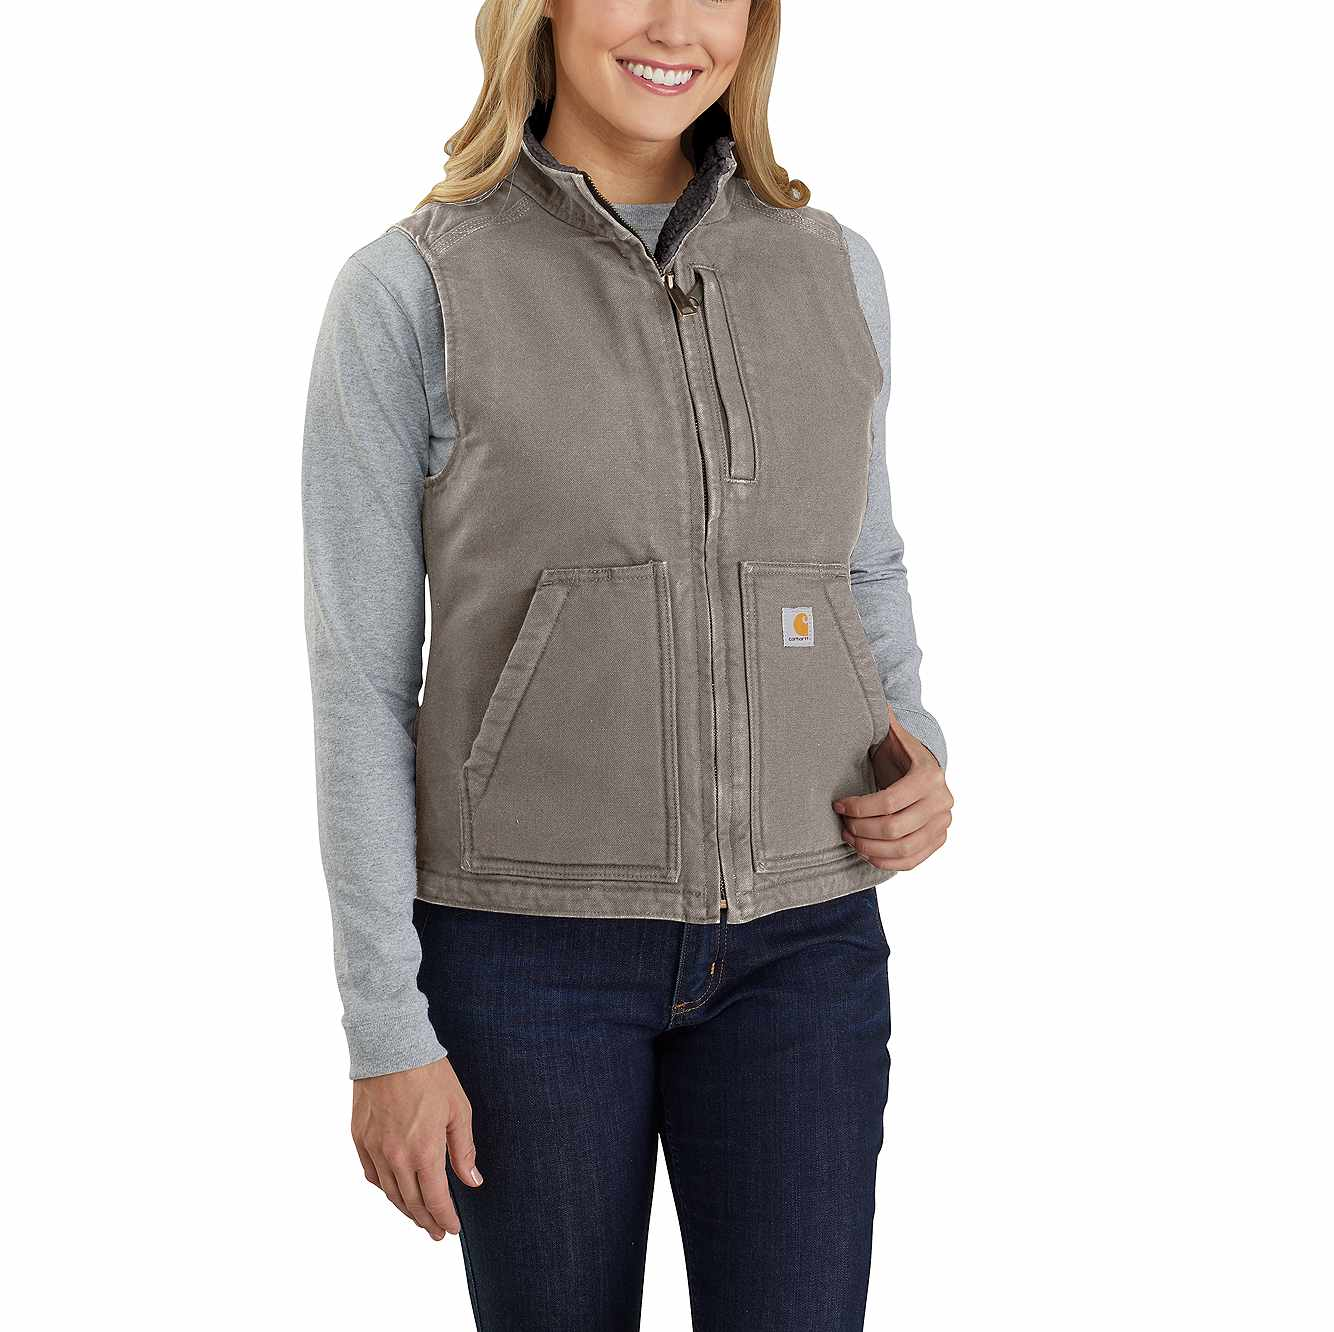 Picture of Carhartt® Washed Duck Sherpa Lined Vest in Taupe Gray